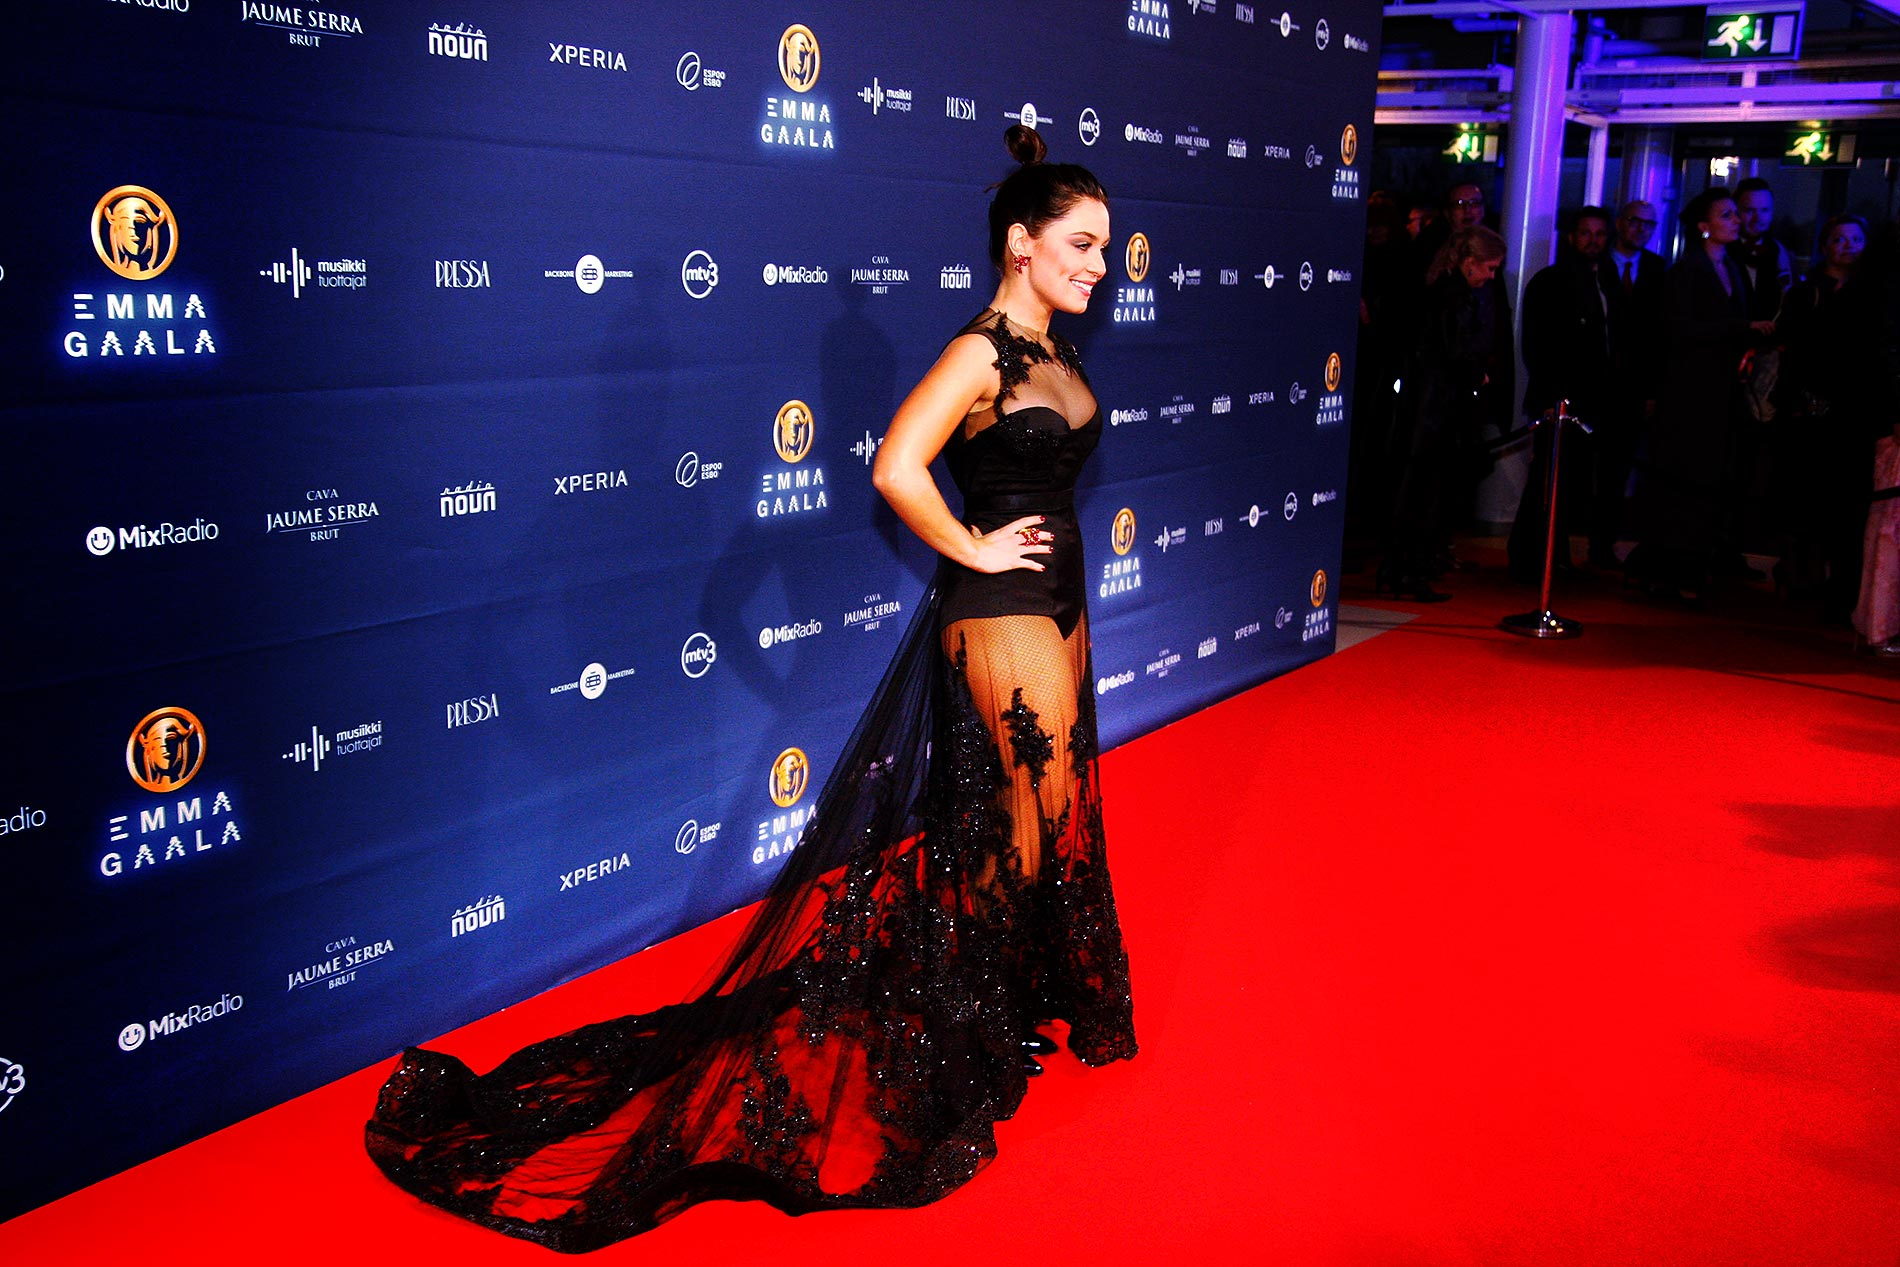 Anna Abreu posing at the Emma Gala at Barona Arena in Espoo, Finland on Friday, February 27 2015. Picture: Tony Öhberg for Finland Today